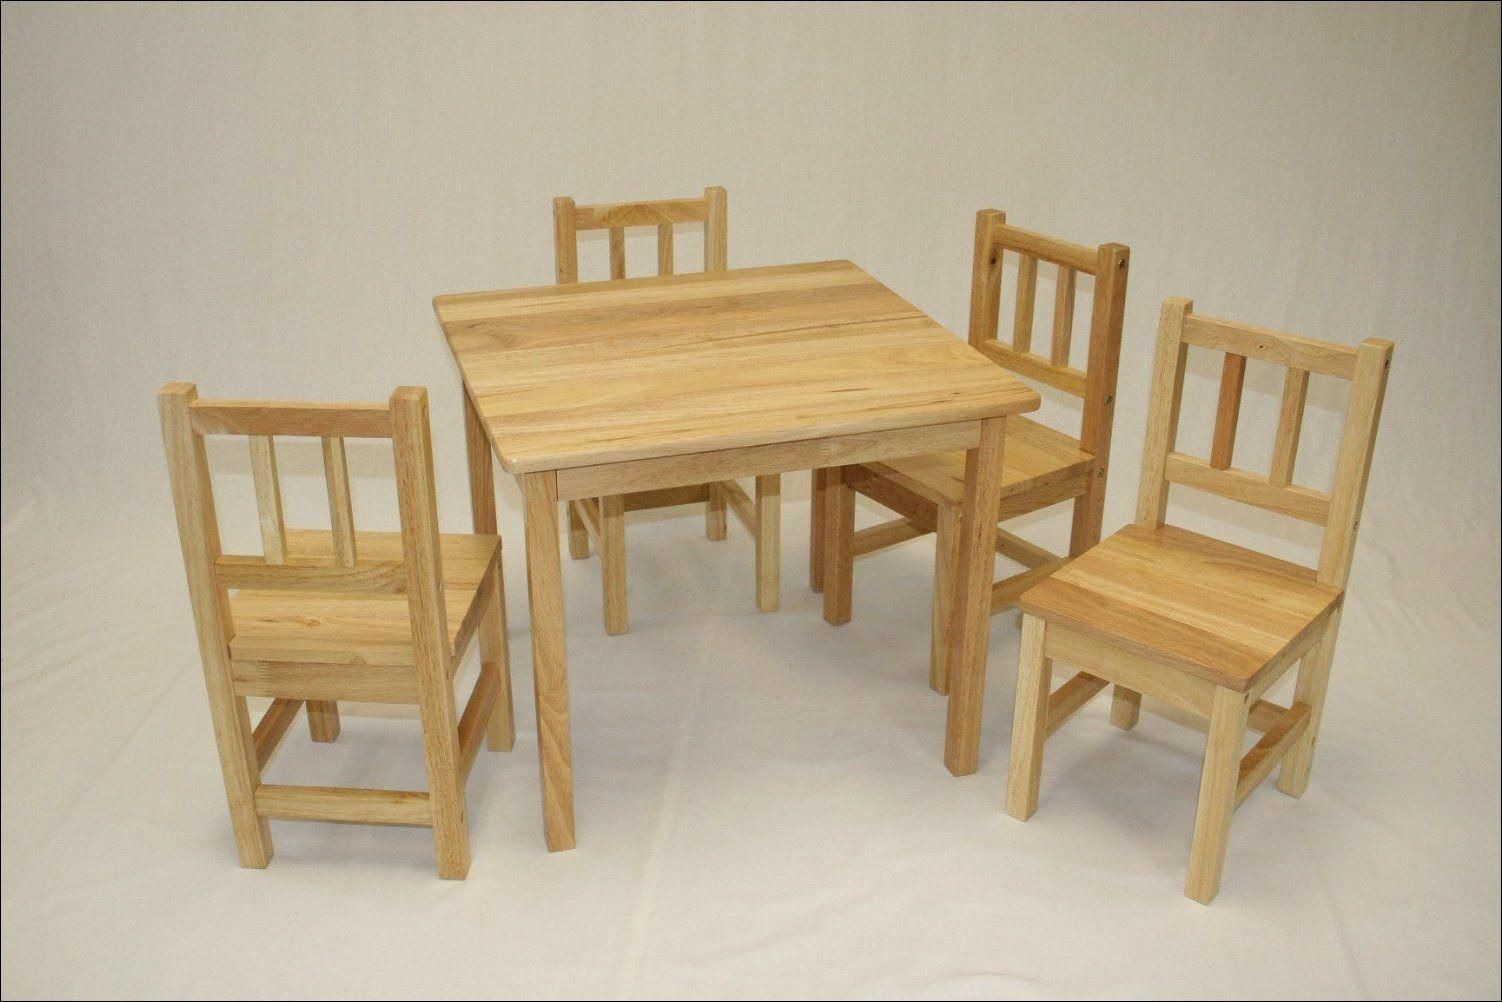 Toddler Wooden Chair Wooden Table And Chair Set For Kids 1 Childrenschair Nursery